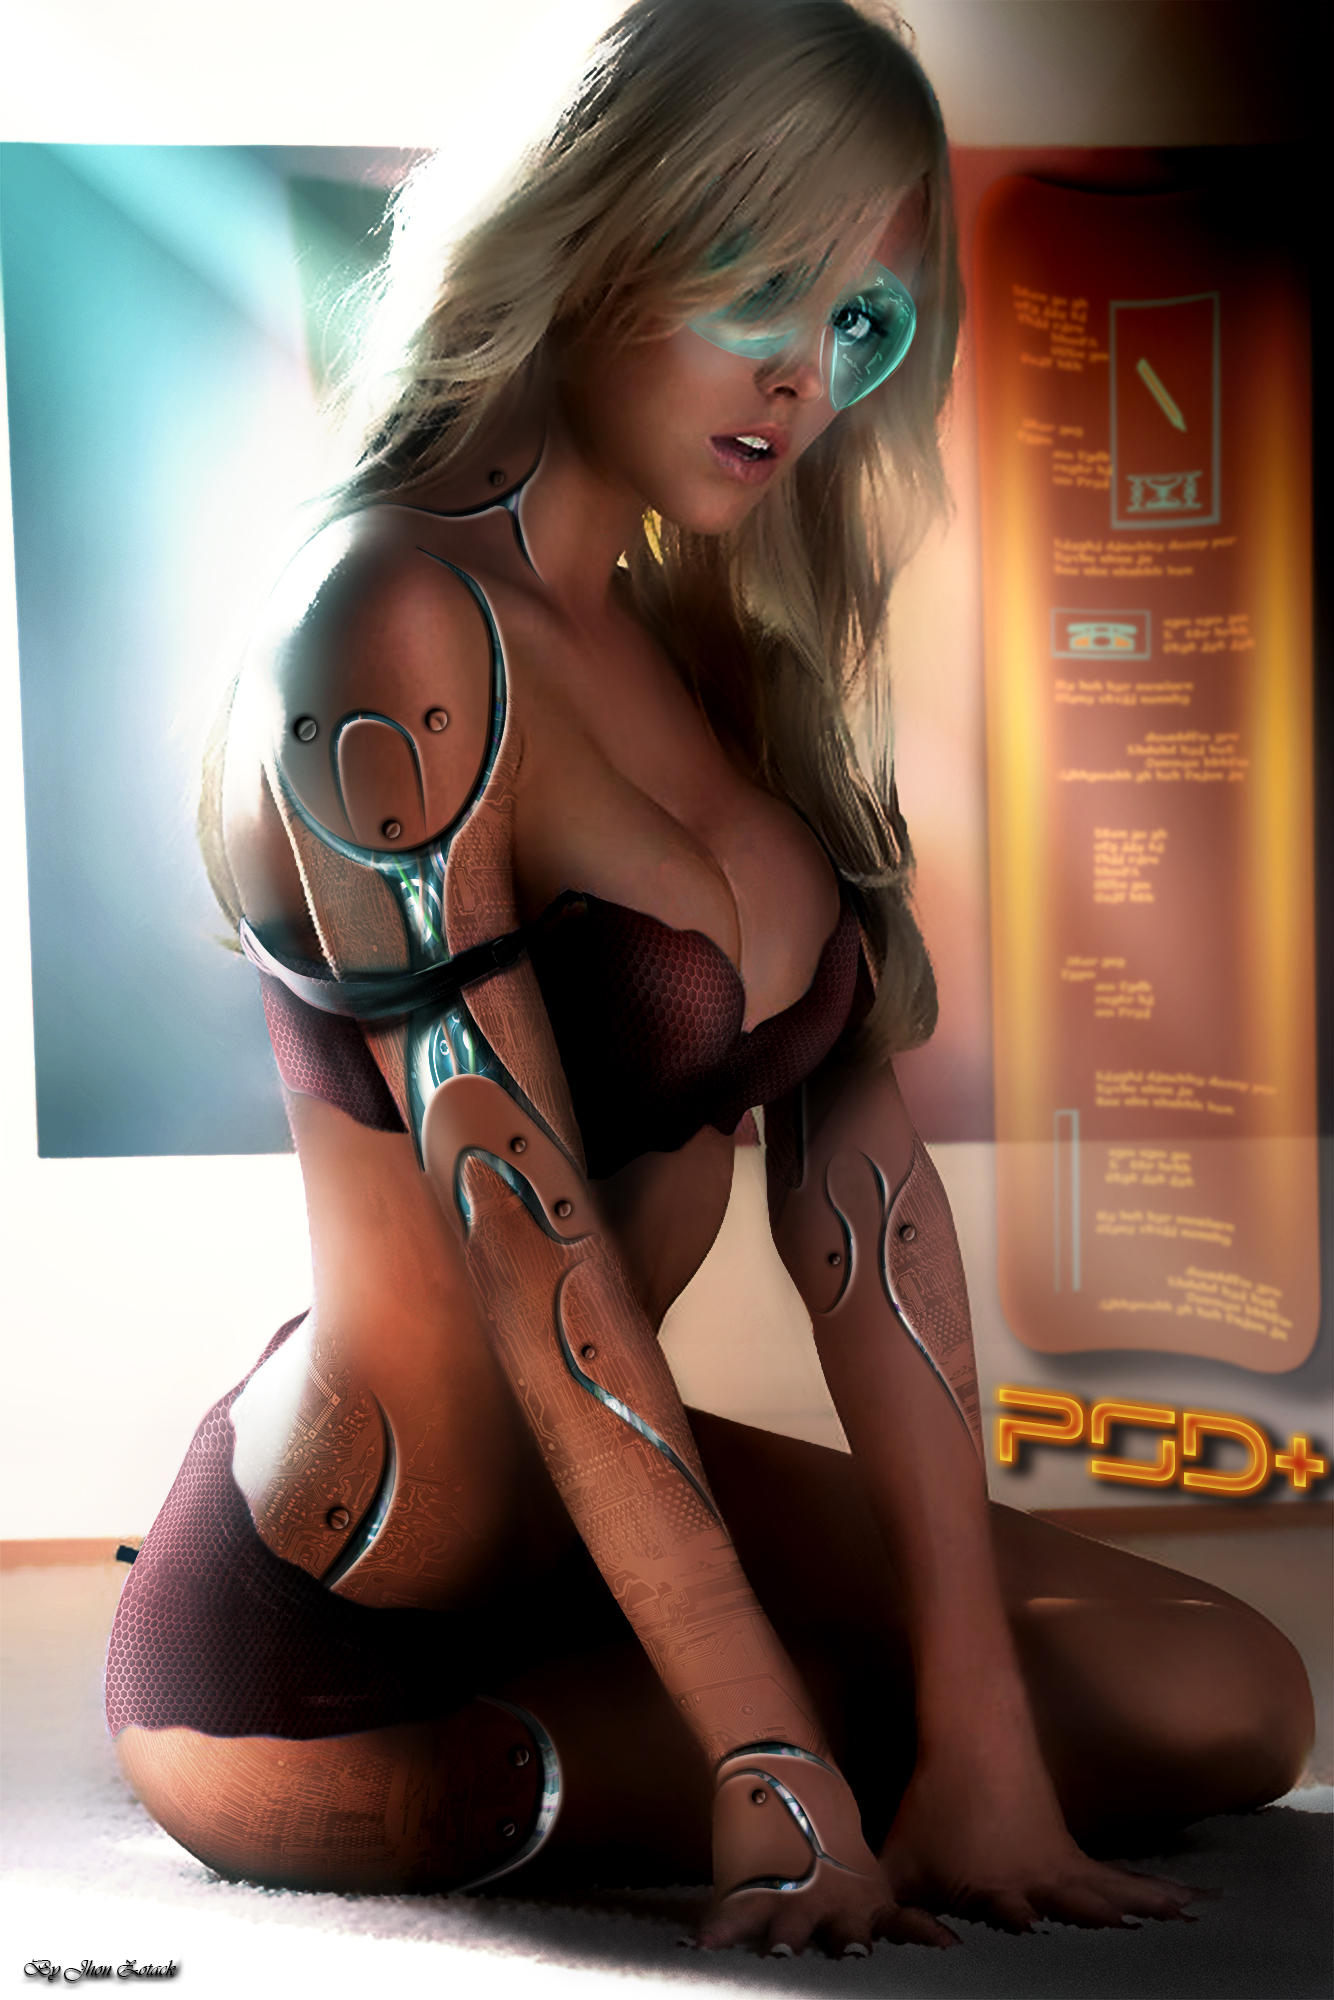 Sexy sci-fi women porncraft sport actress